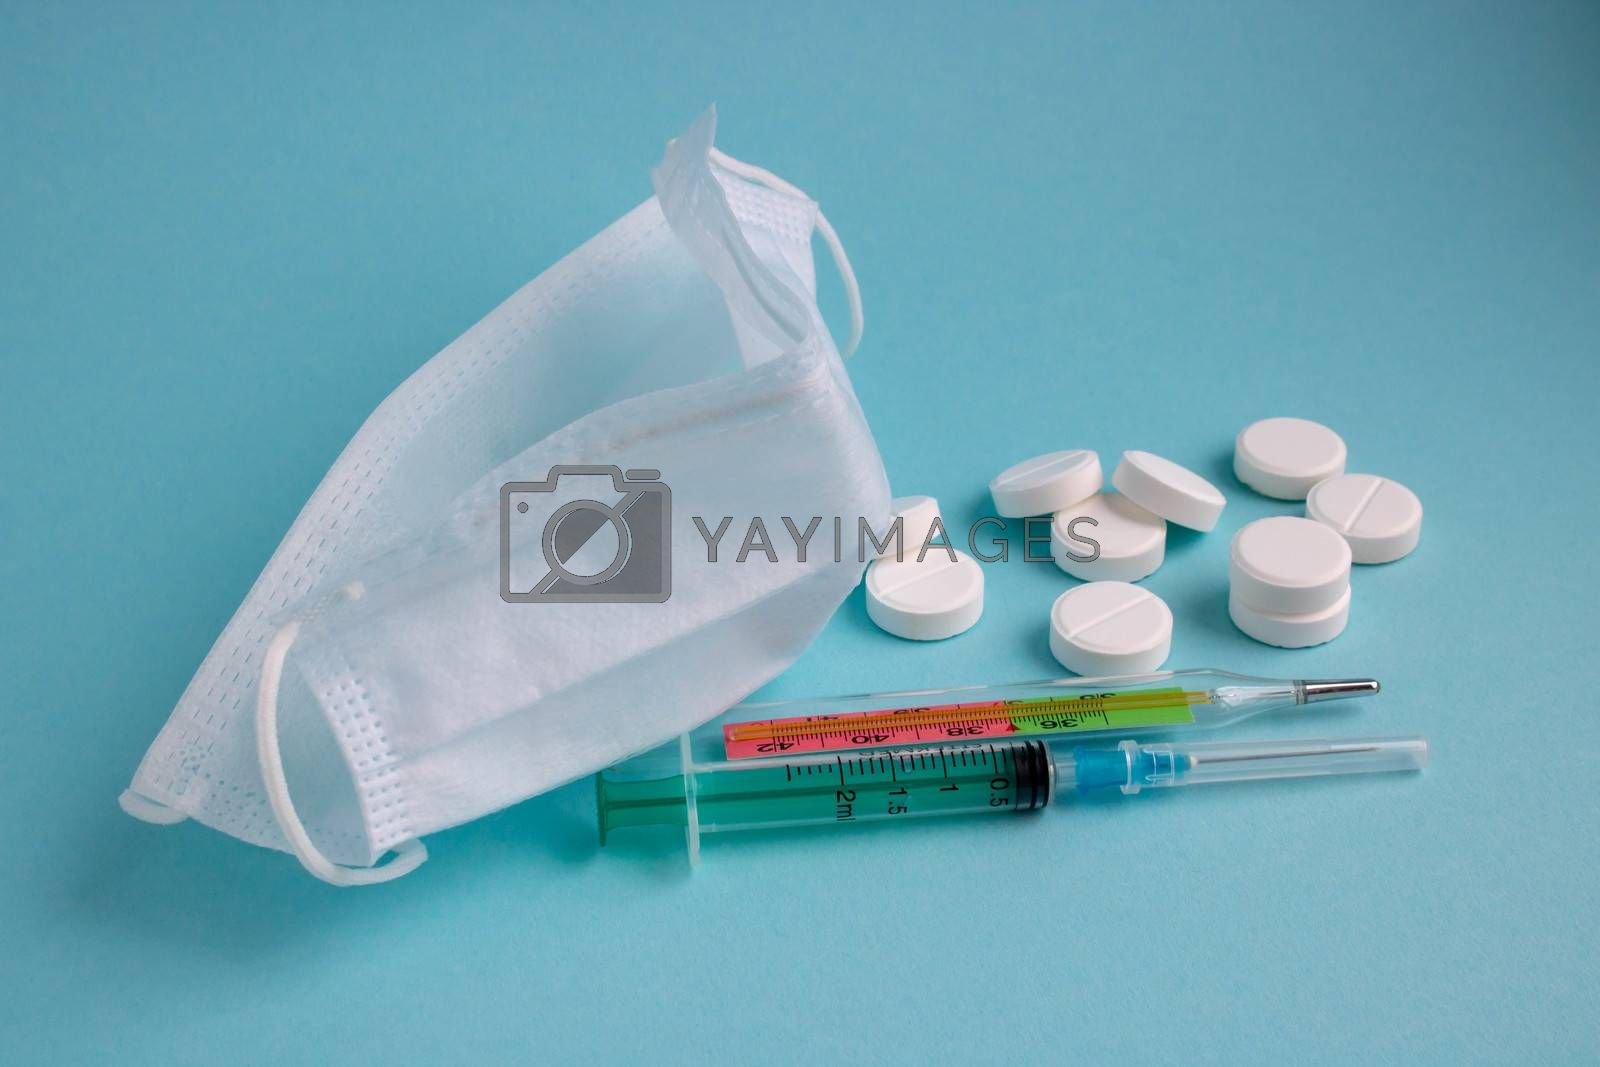 anti-virus medical supplies. concept of deadly coronavirus epidemic. thermometer, mask, syringe with vaccine and antibiotic pills